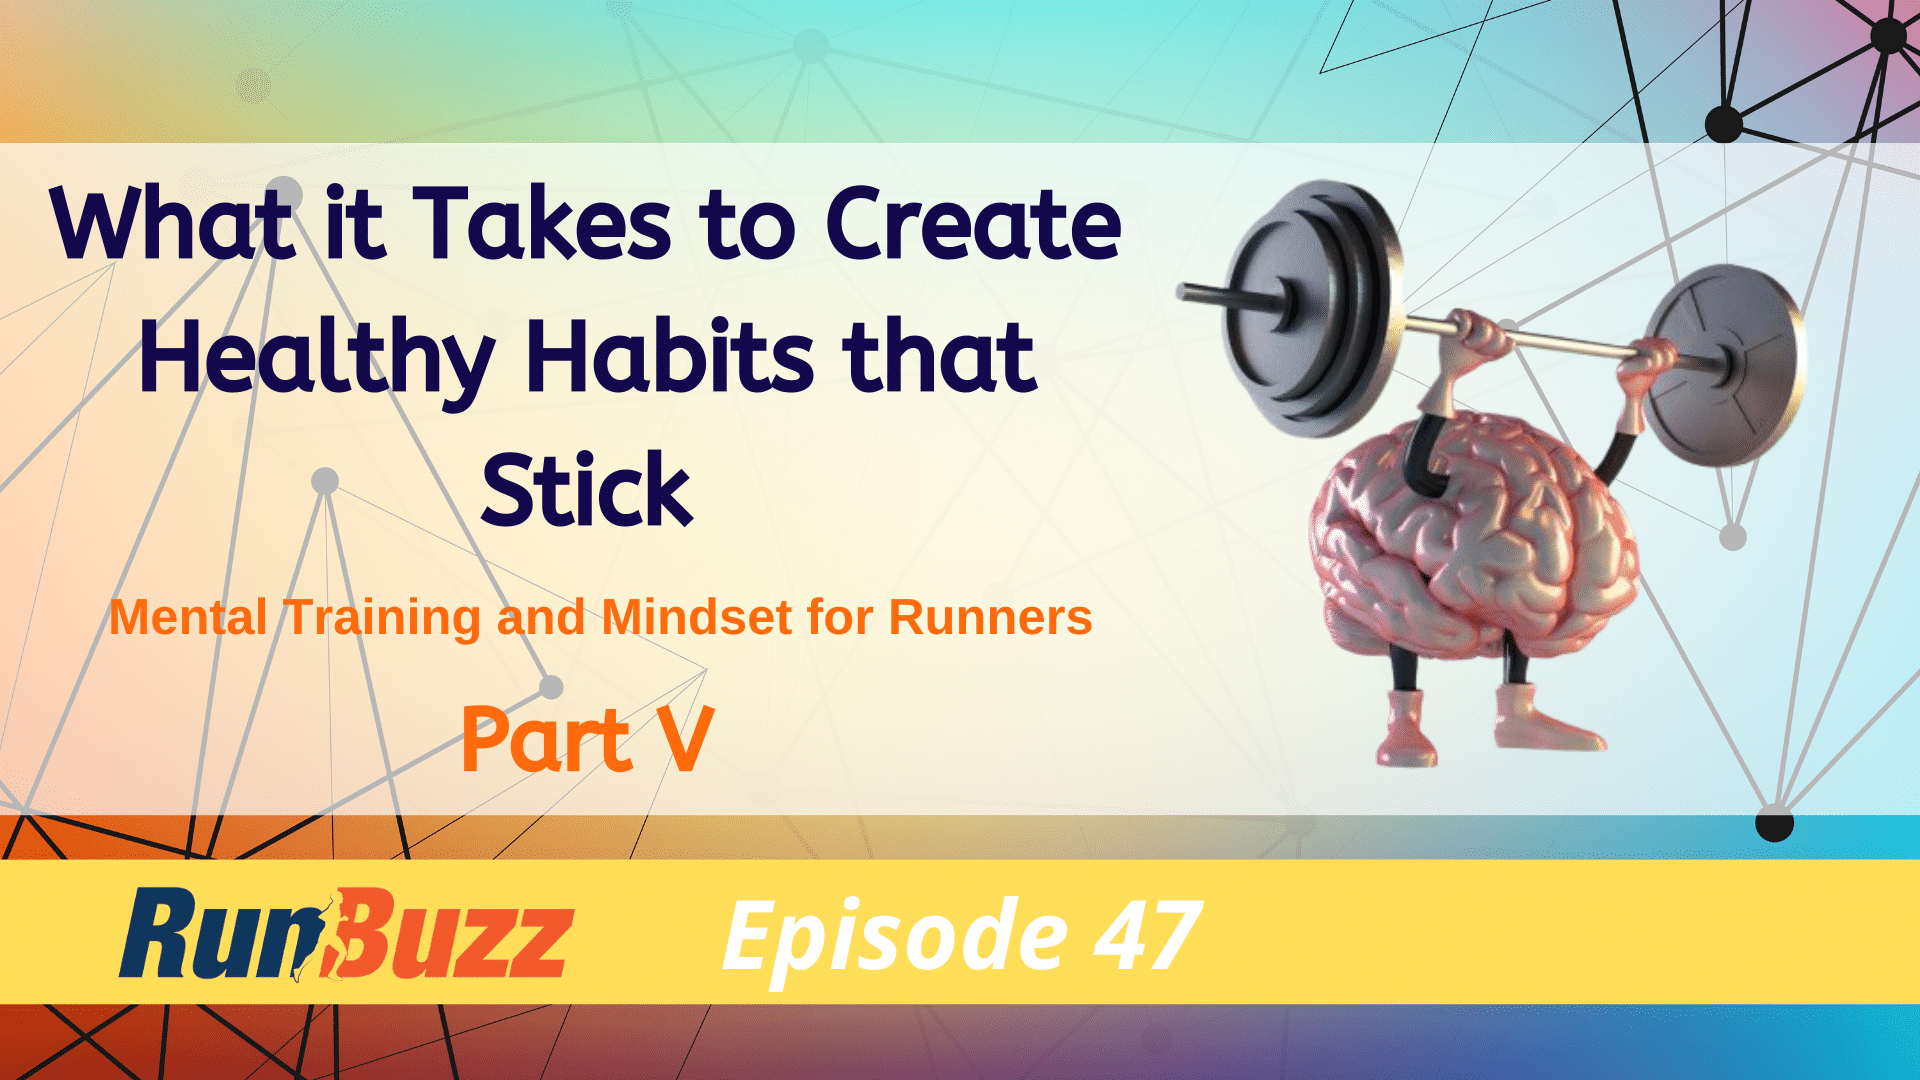 What-It-Takes-To-Create-Healthy-Habits-That-Stick